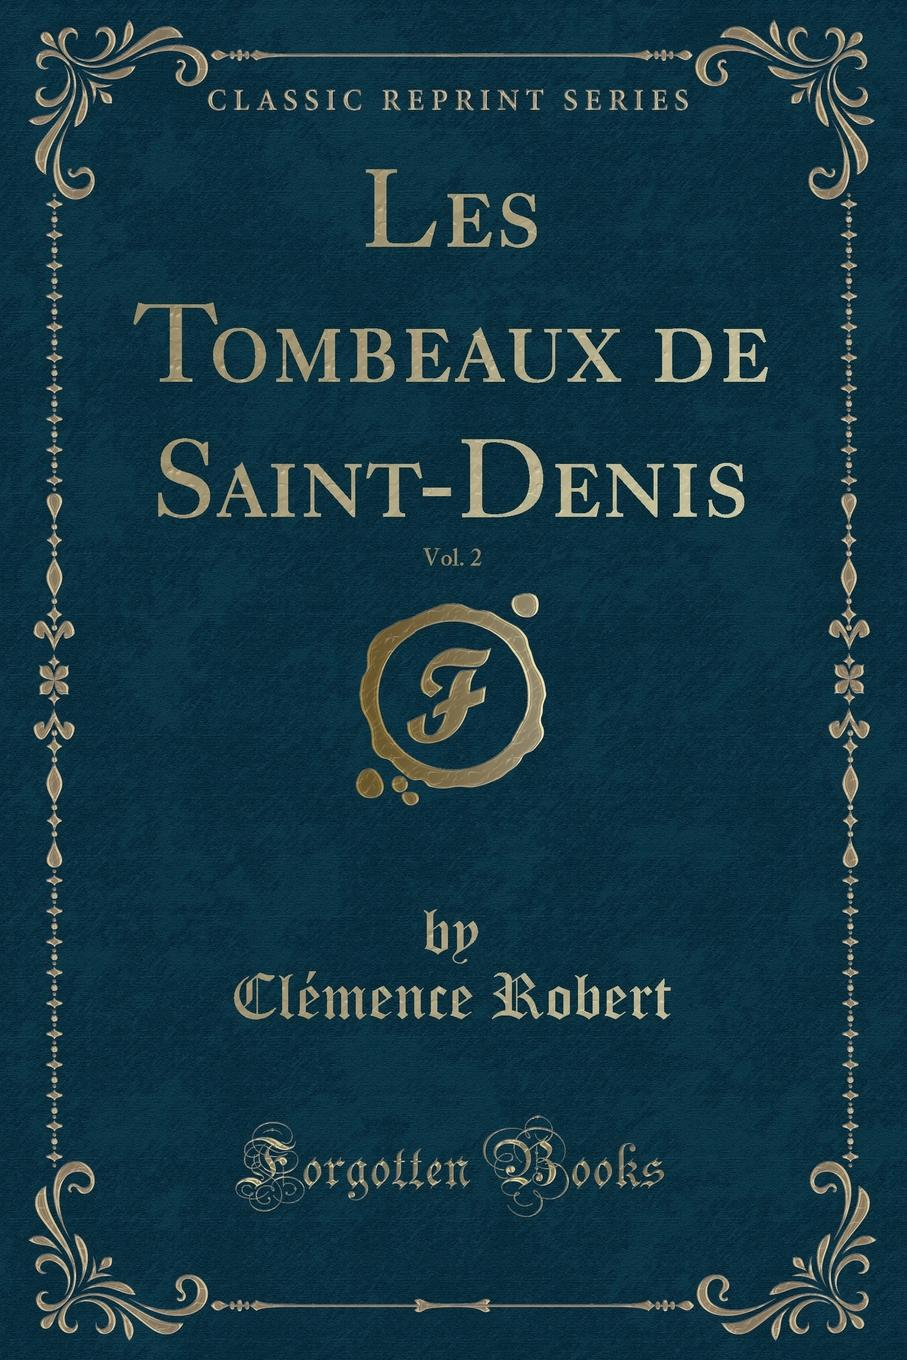 Clémence Robert Les Tombeaux de Saint-Denis, Vol. 2 (Classic Reprint) stormwatch vol 2